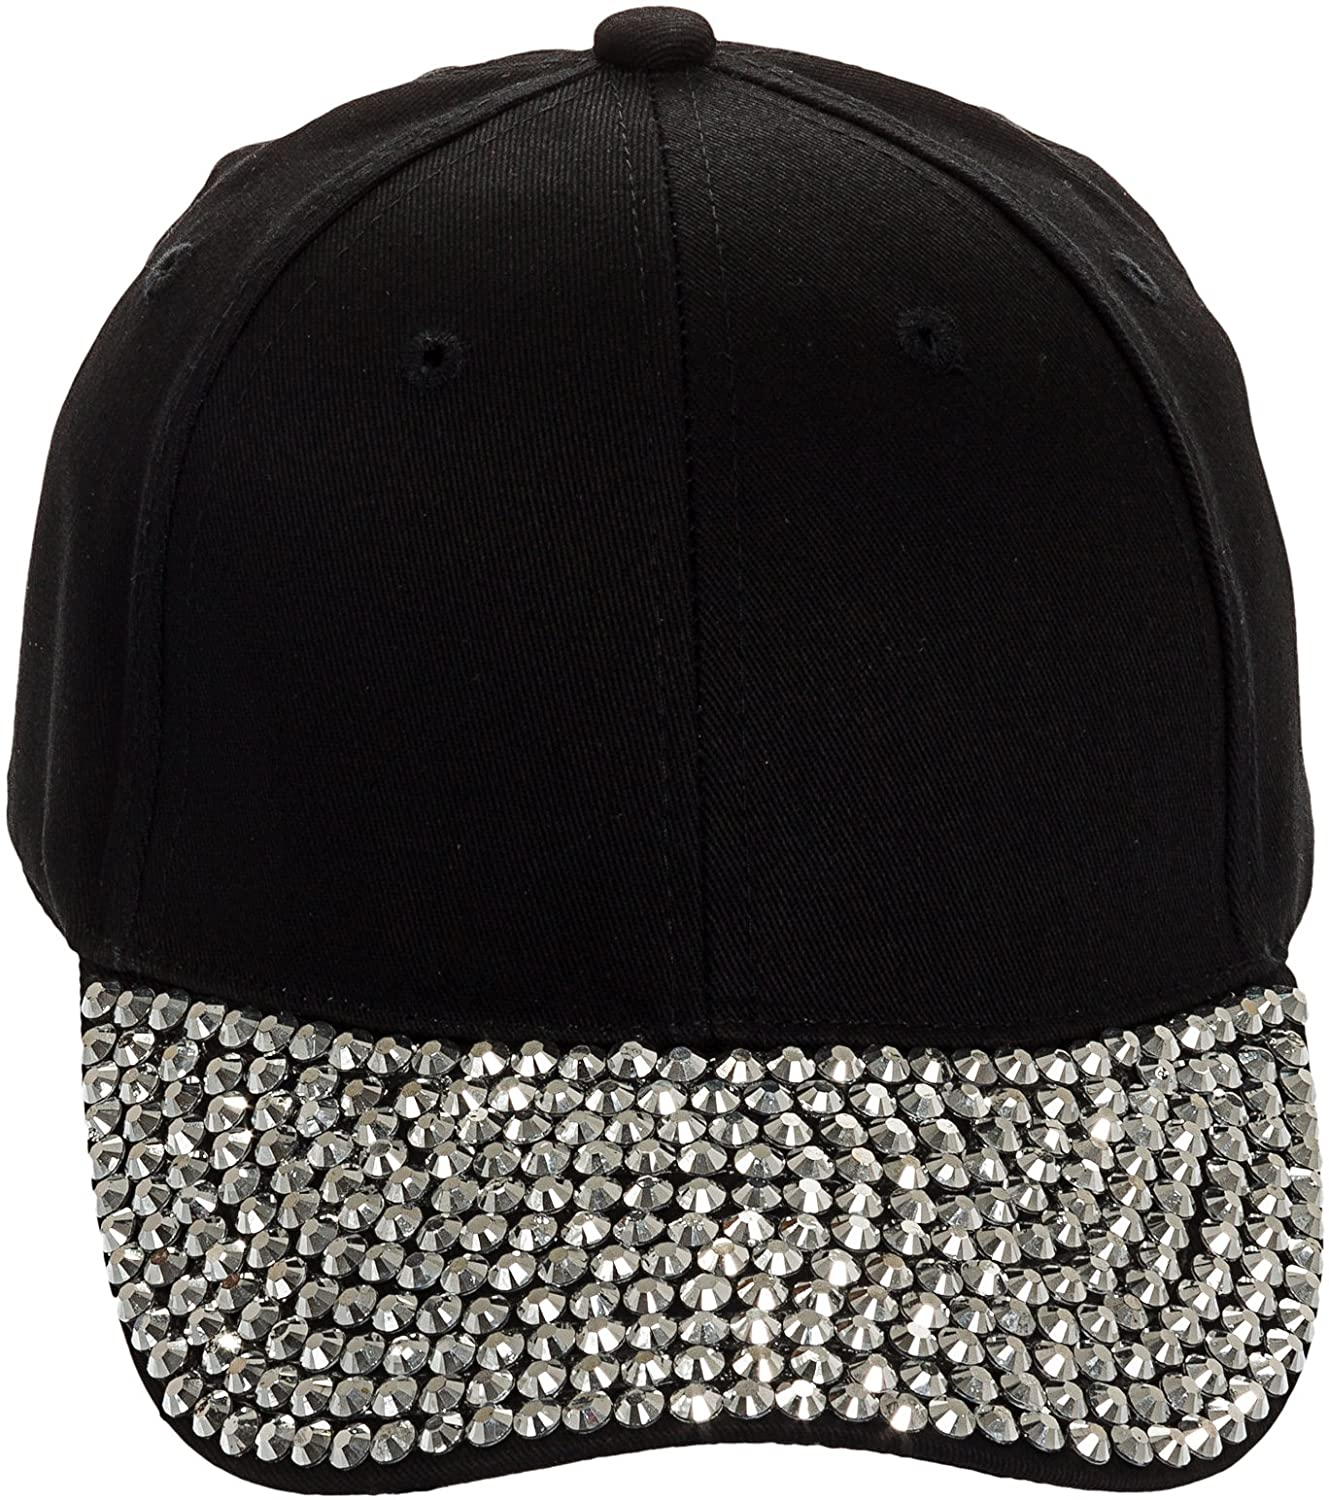 a9b0b4743ba Amazon.com  Crystal Case Studded Rhinestone Brim Adjustable Baseball Cap Hat  (Black)  Clothing